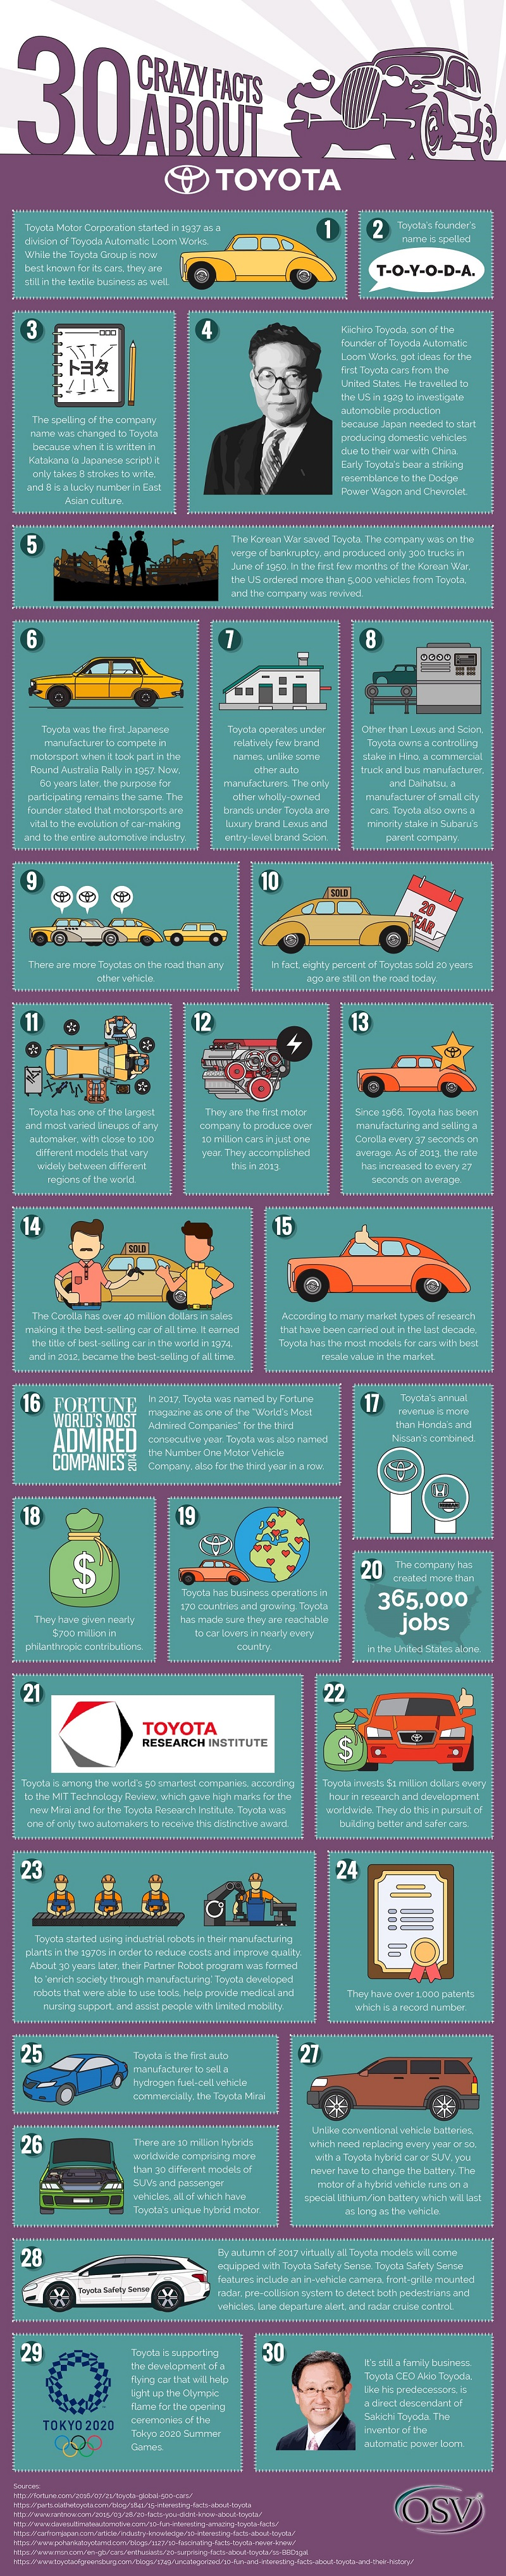 30 Facts about Toyota